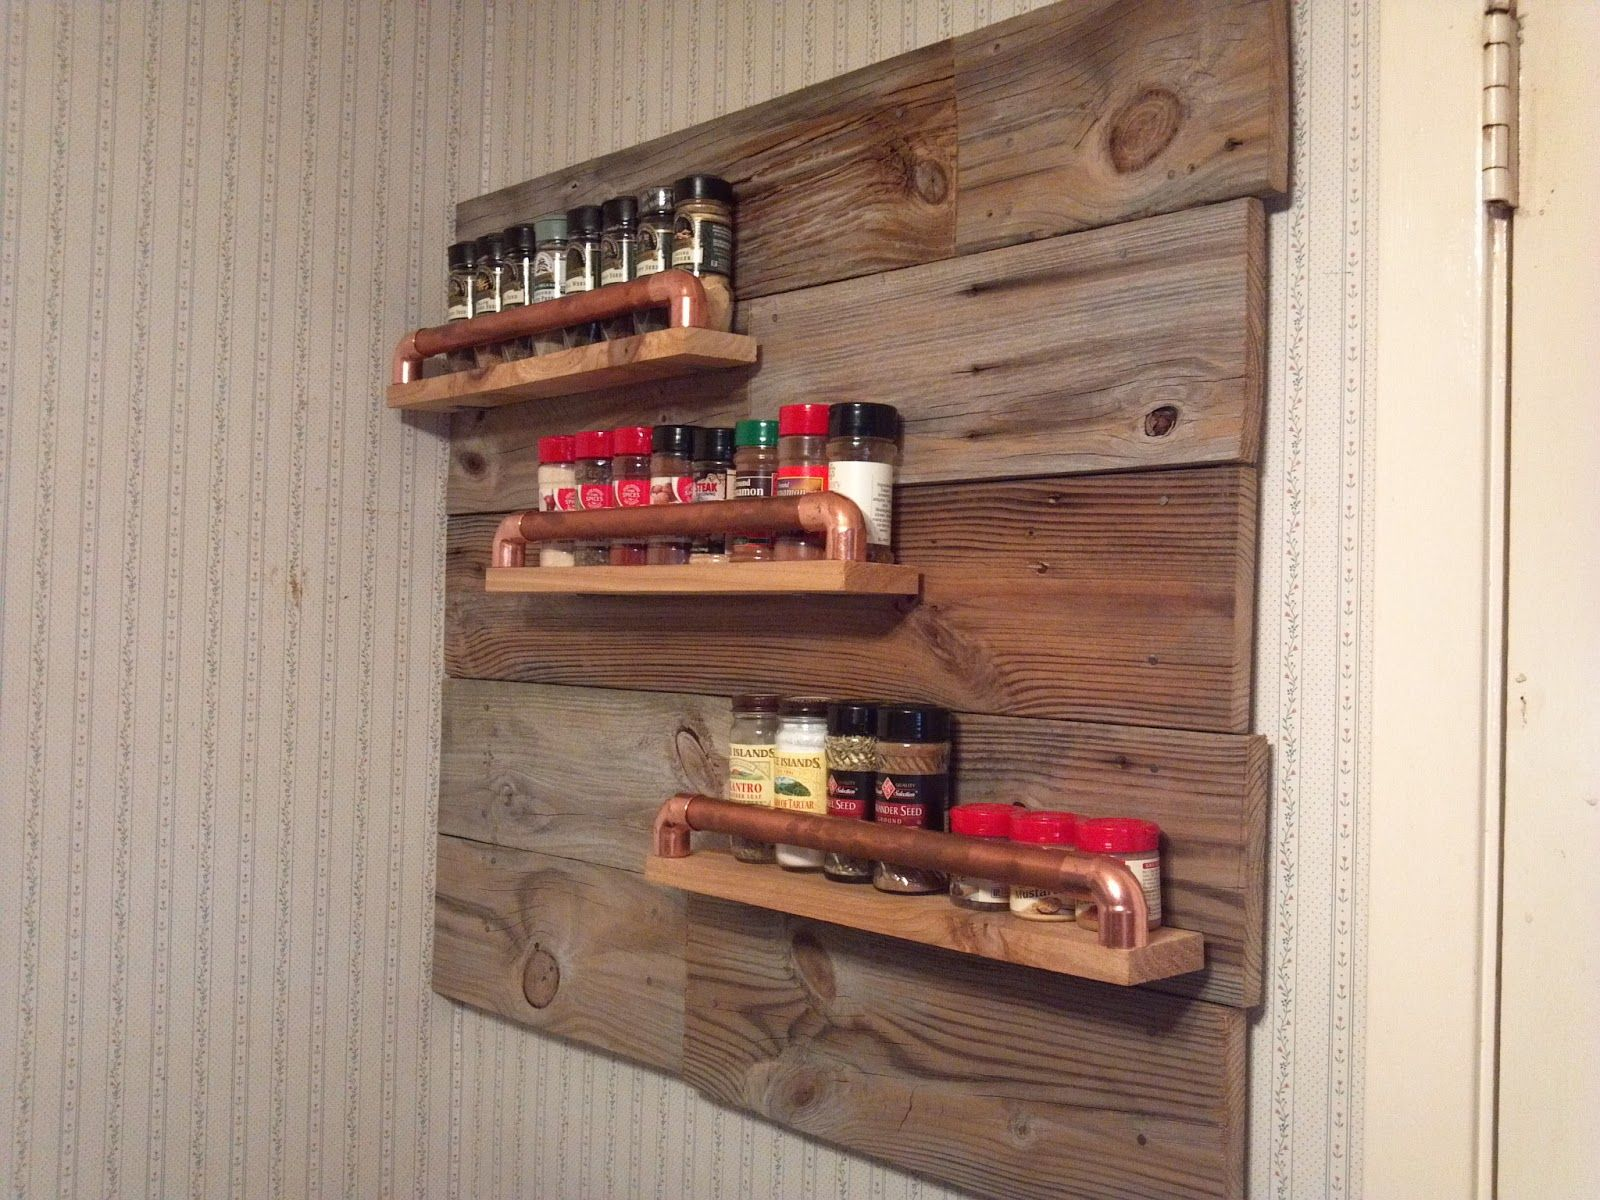 Kitchen wall hanging ideas - Find This Pin And More On Kitchen Cabinet Ideas